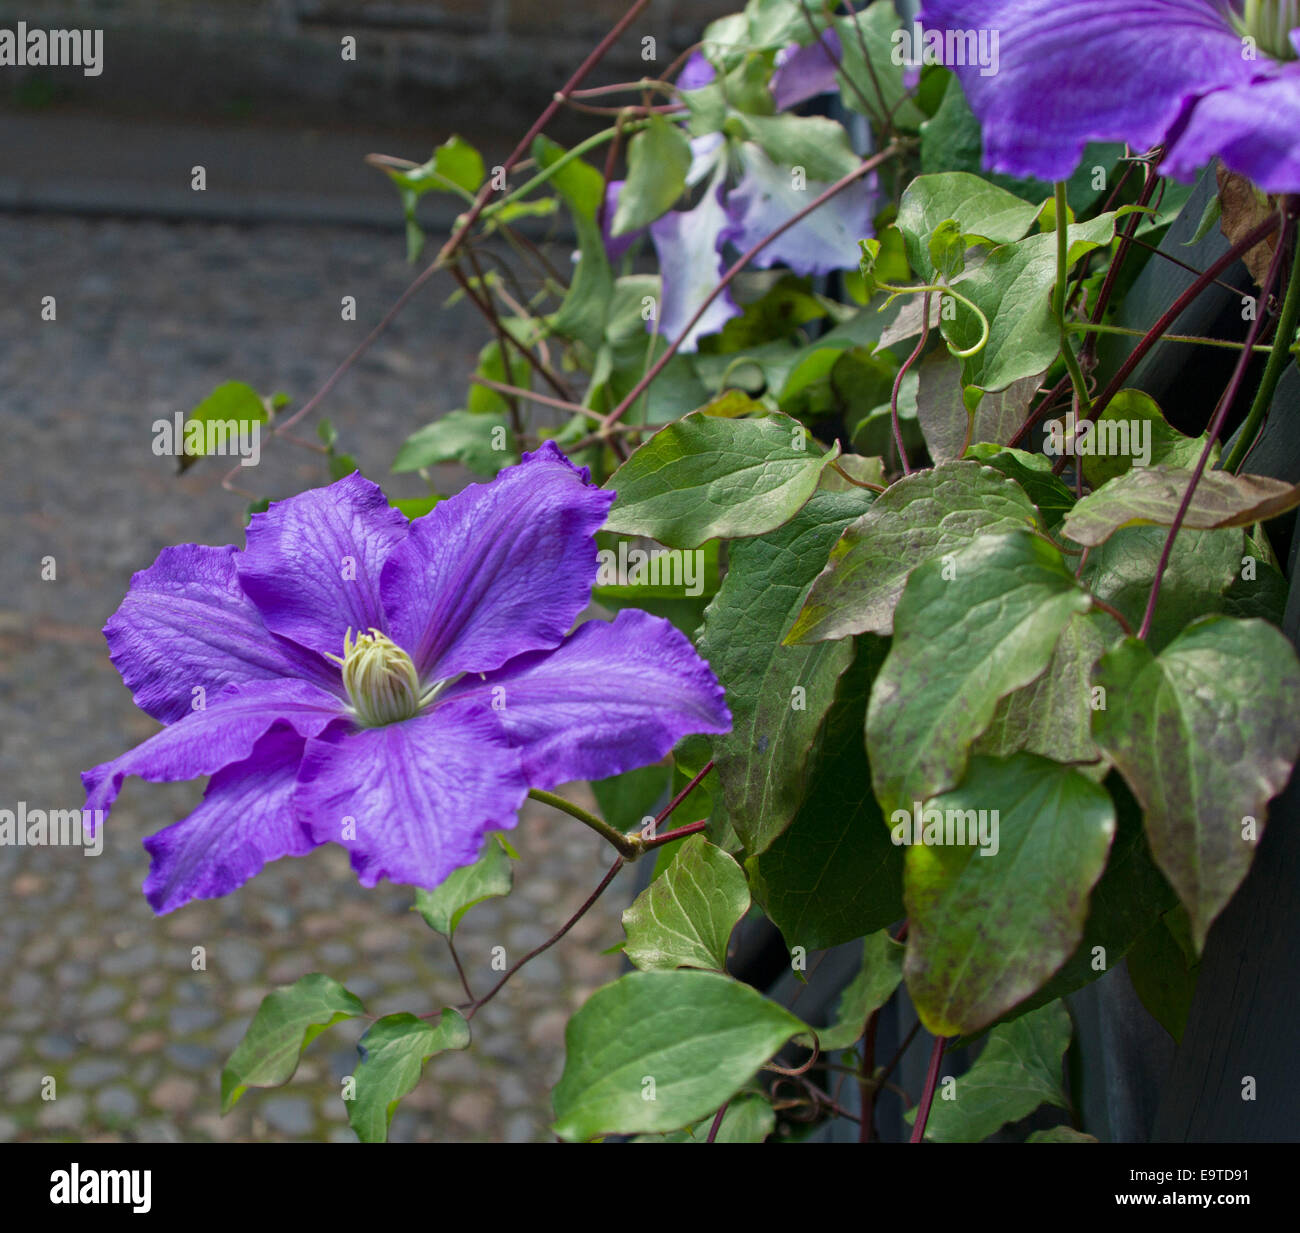 Spectacular Huge Purple Flower And Emerald Green Leaves Of Clematis